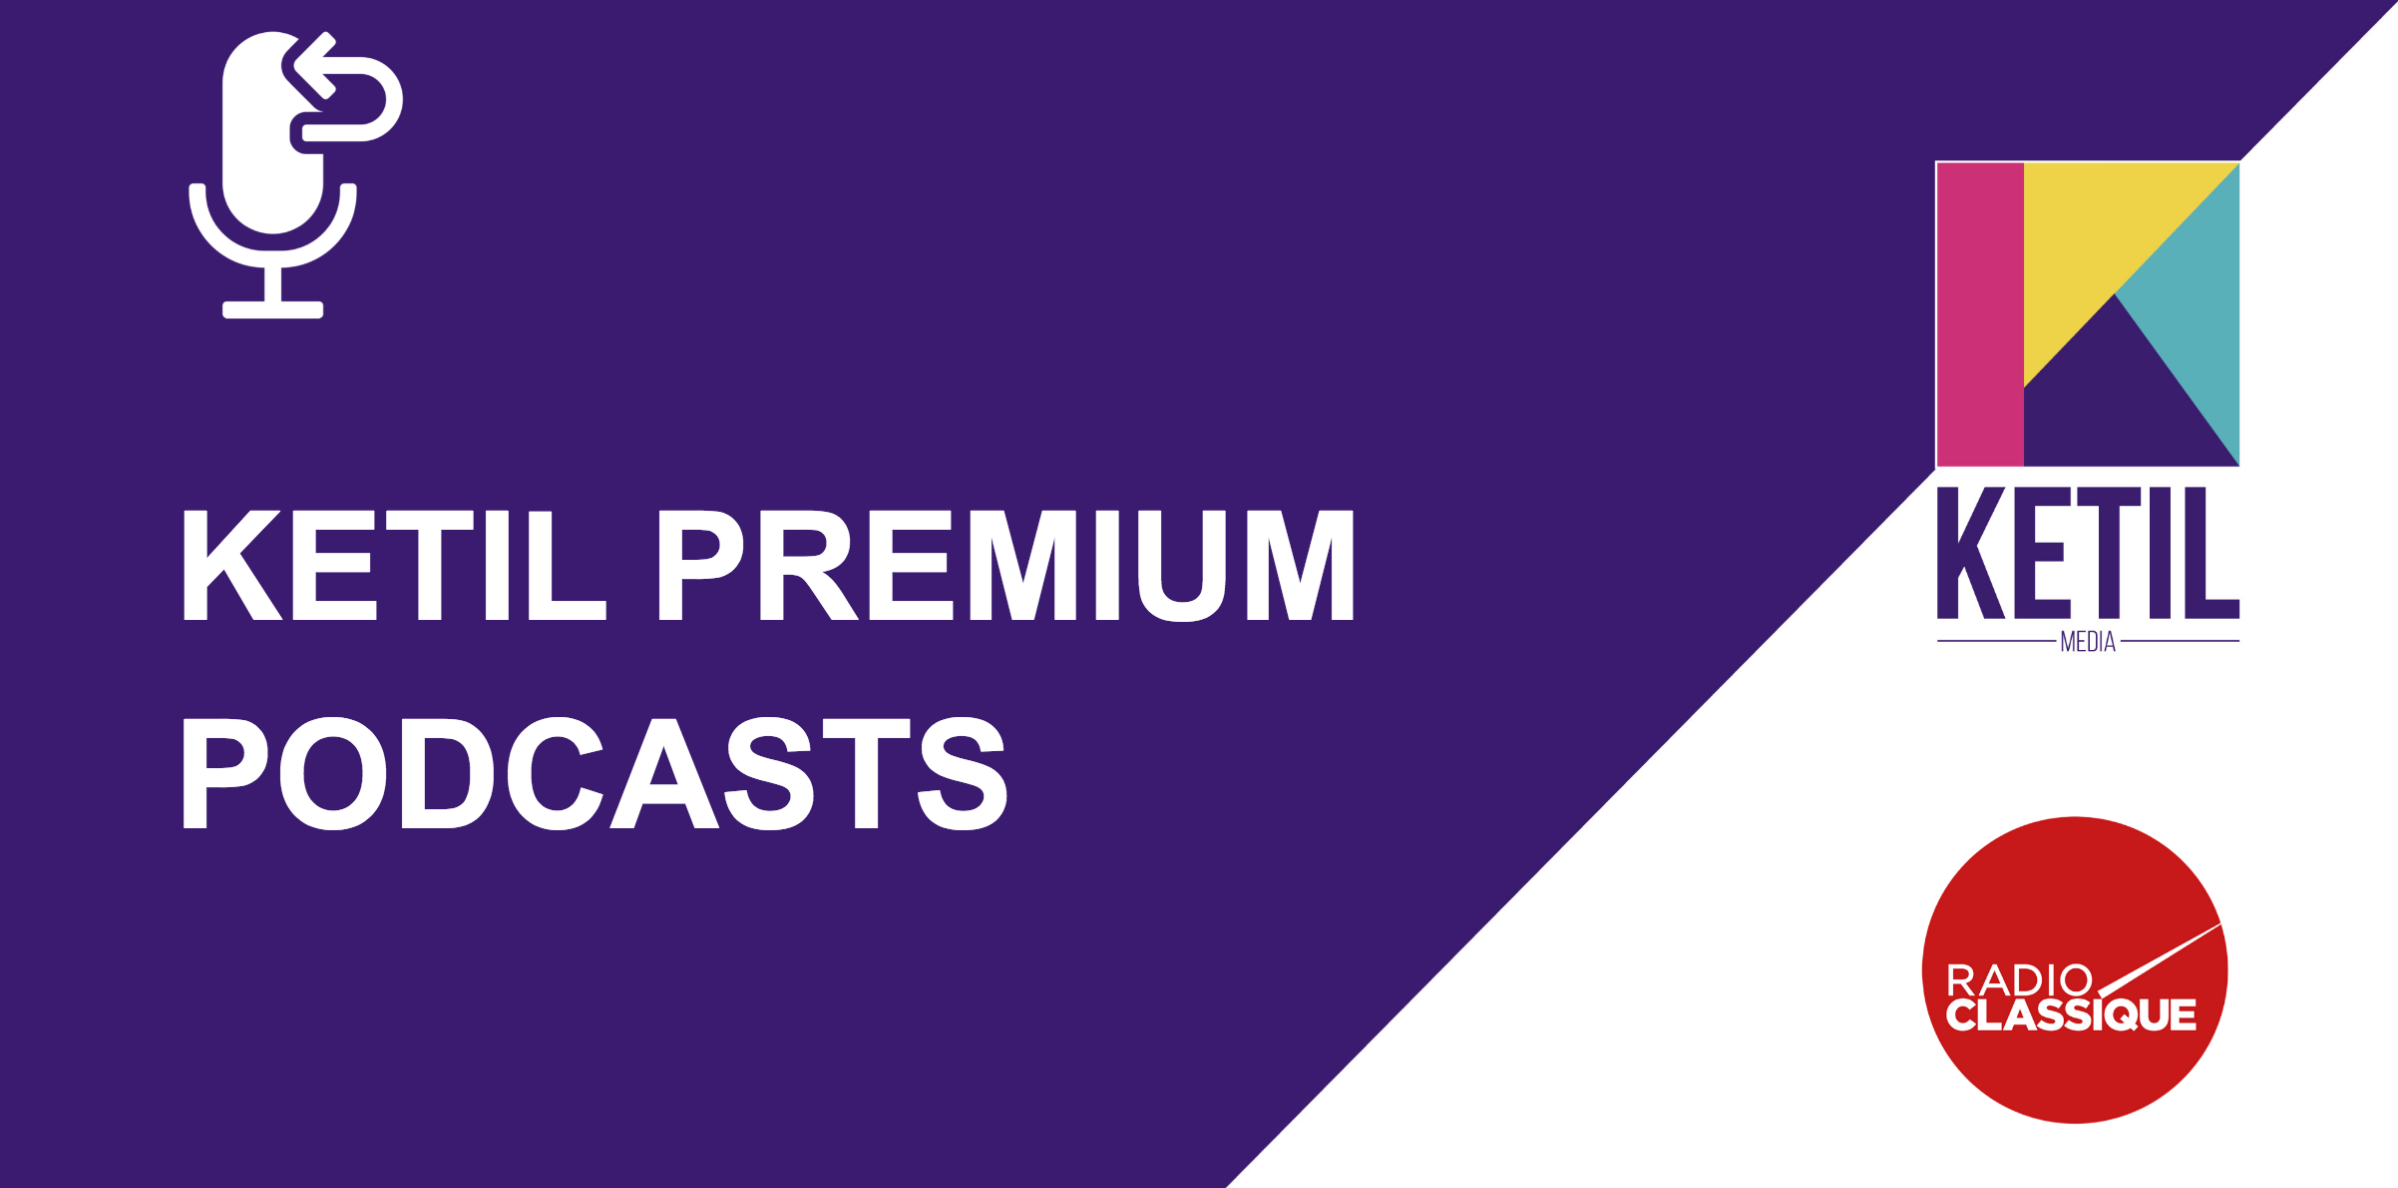 "Ketil Media lance l'offre ""Ketil Premium Podcasts"""